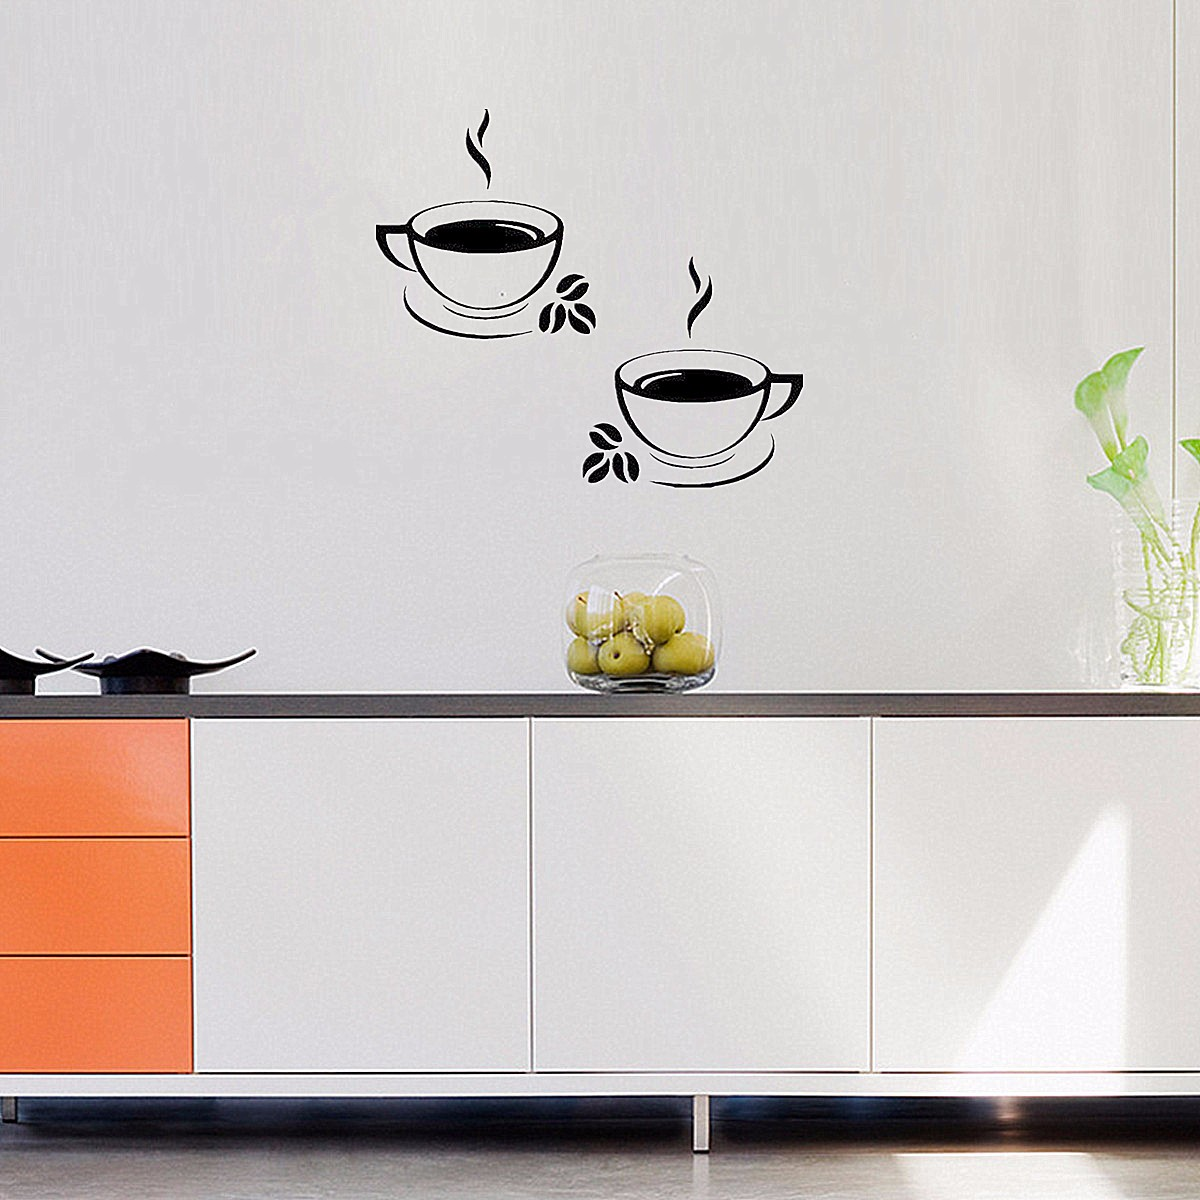 Waterproof Coffee Cups Kitchen Wall Stickers Art Vinyl Decal Restaurant Pub Cafe Home Decor